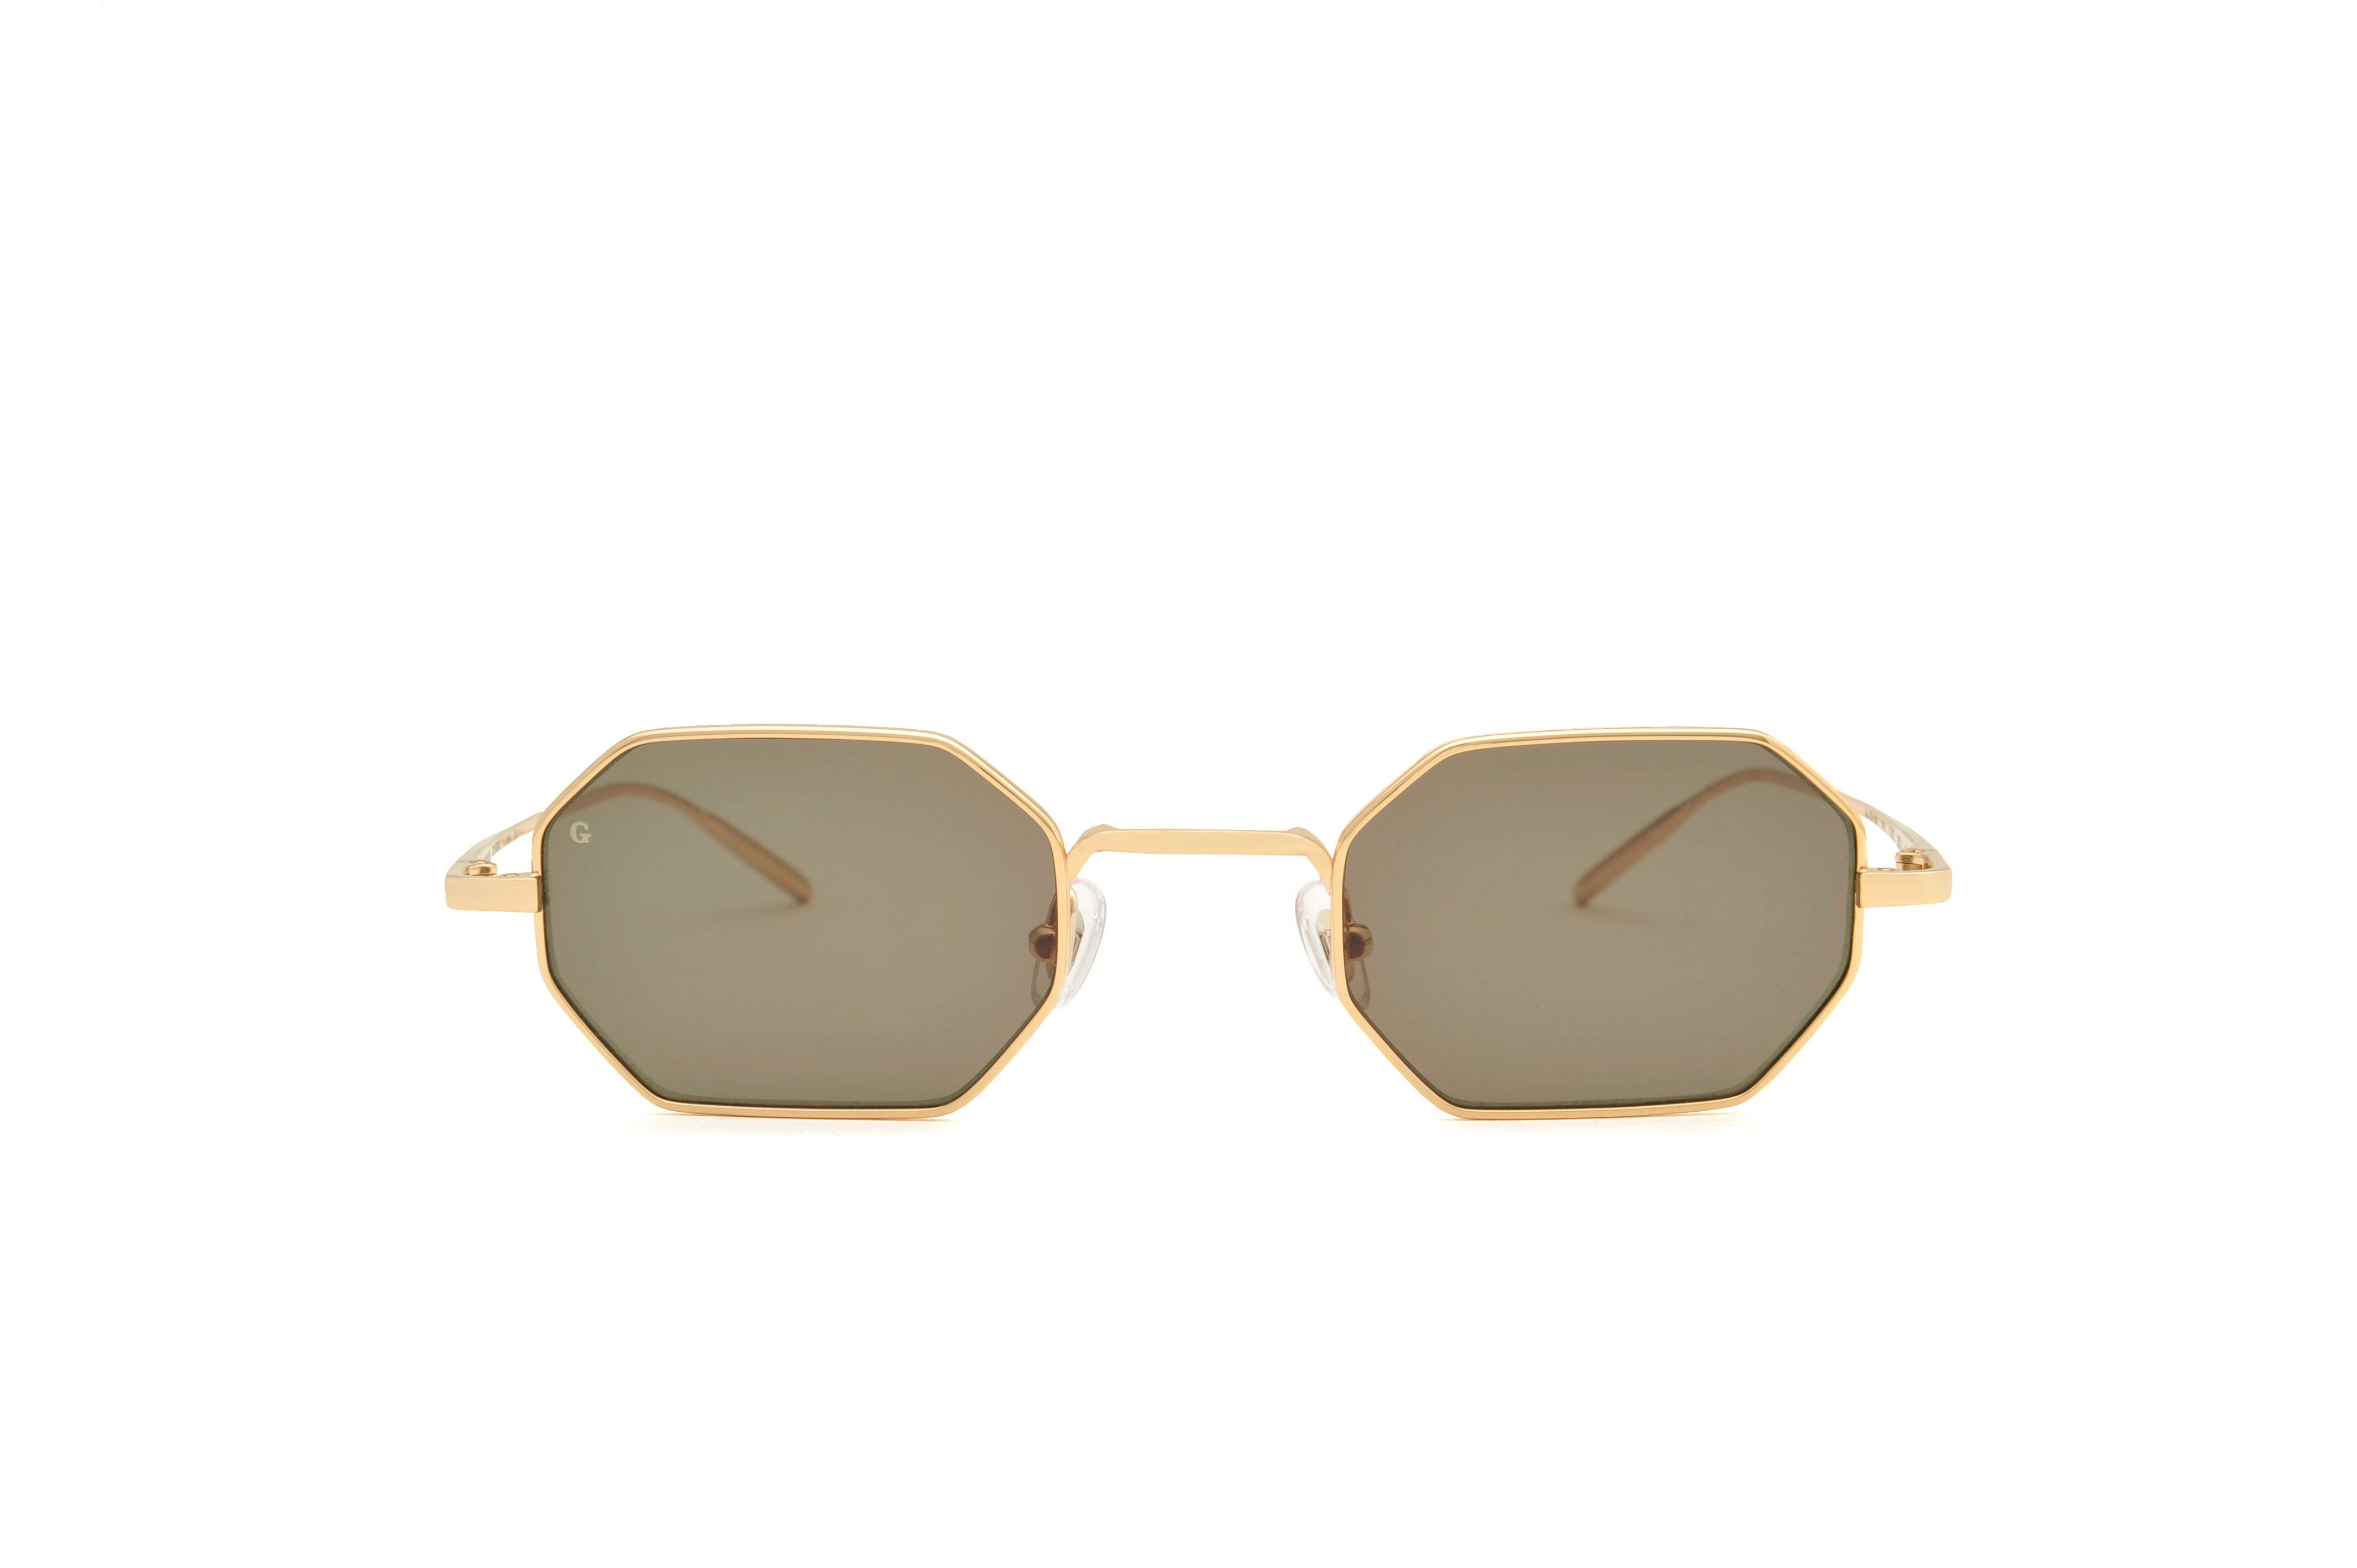 Ibiza metal geometric gold sunglasses by GIGI Studios